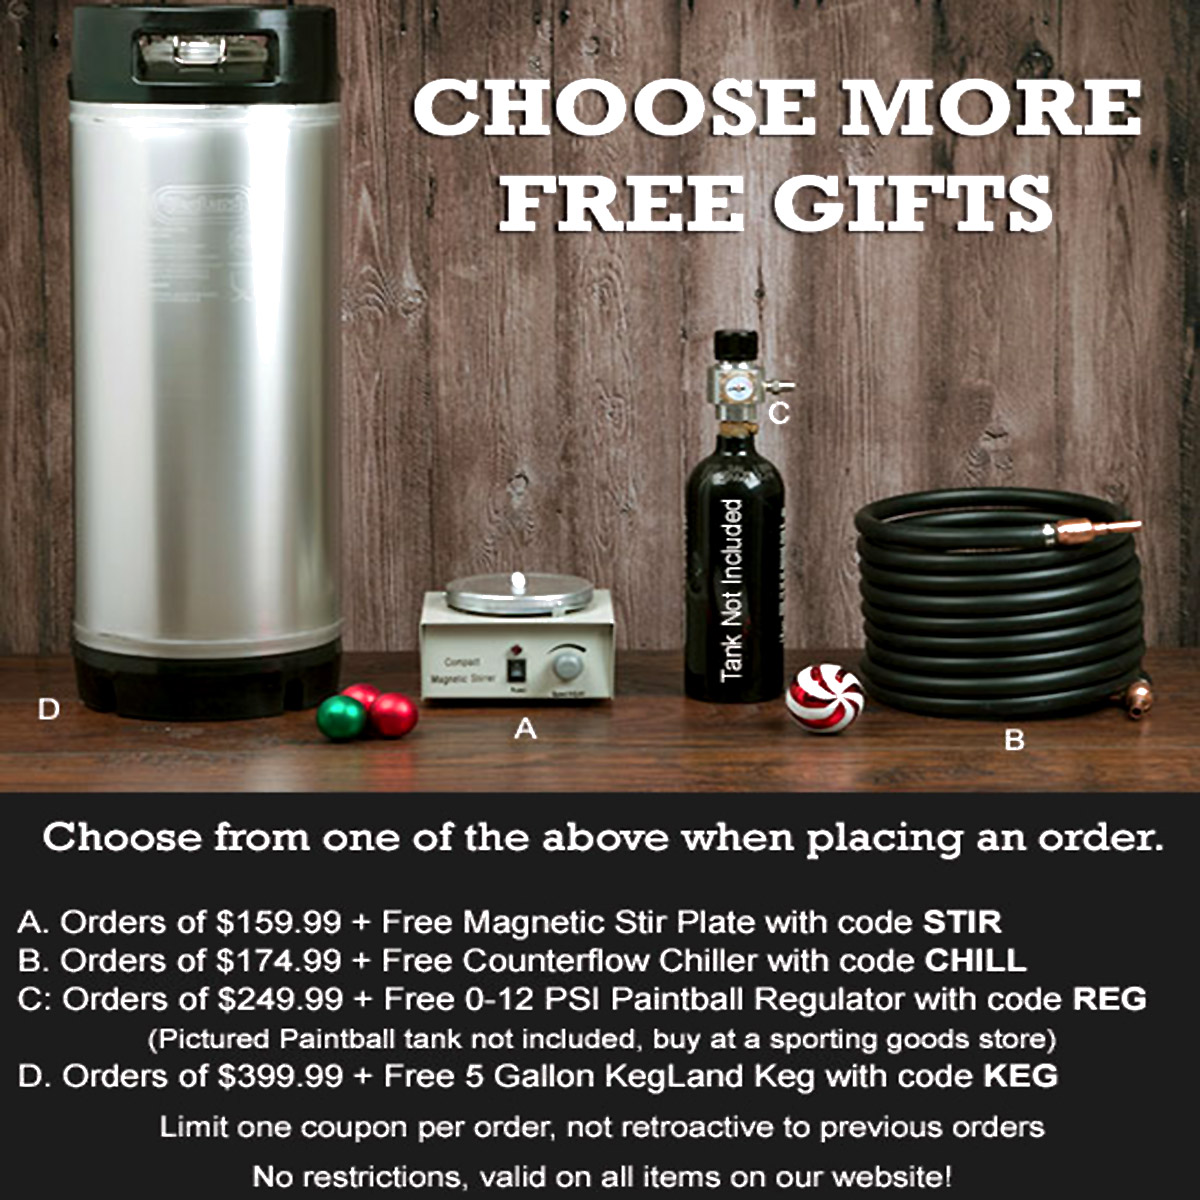 Home Wine Making Coupon Codes for Choose a free gift at Williams Brewing with this WilliamsBrewing.com Coupon Code Coupon Code